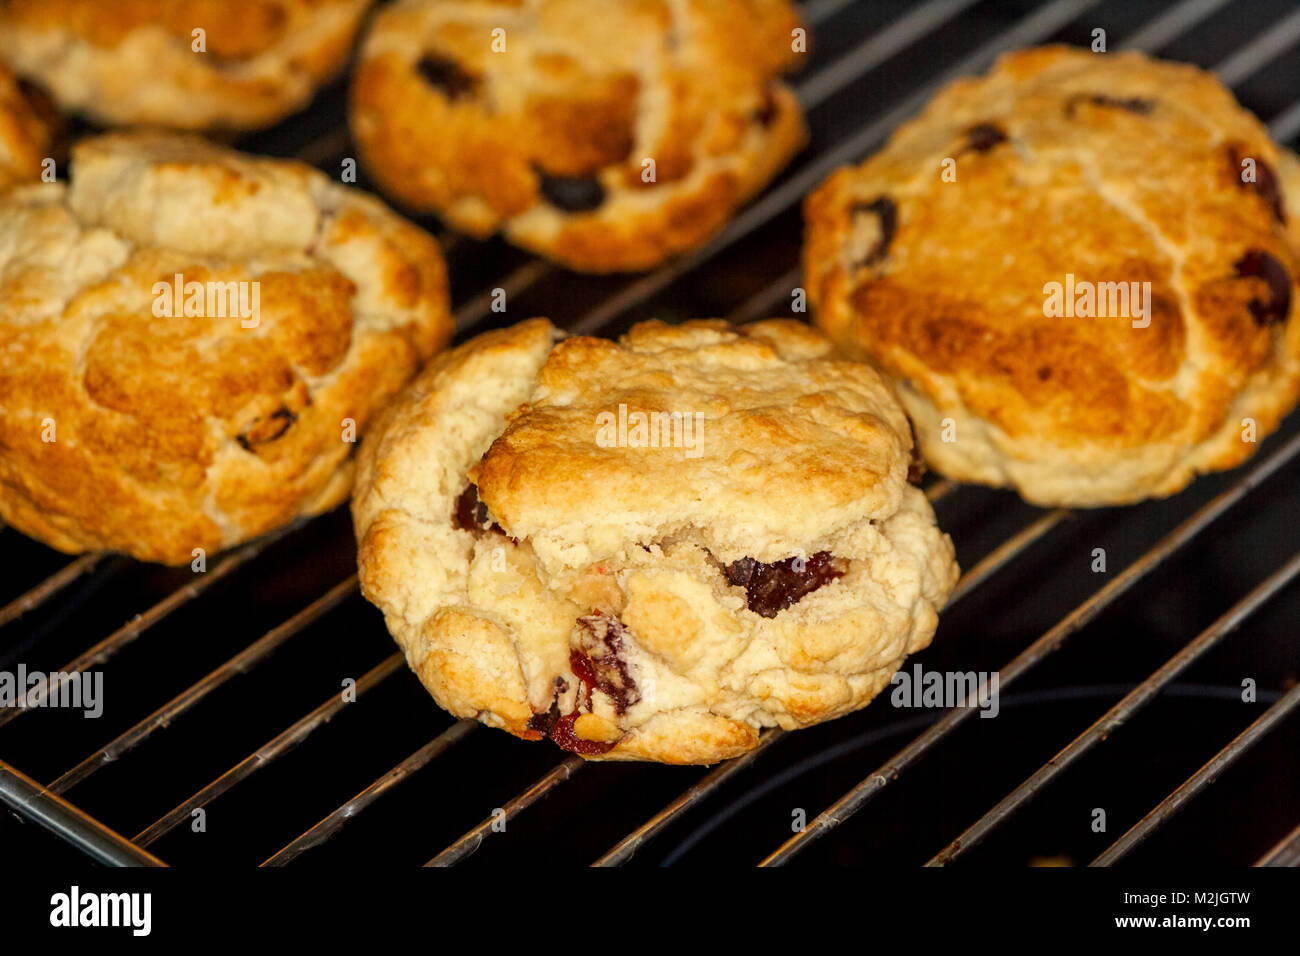 home made fruit scones known as rock cakes cooling on a wire rack after baking - Stock Image